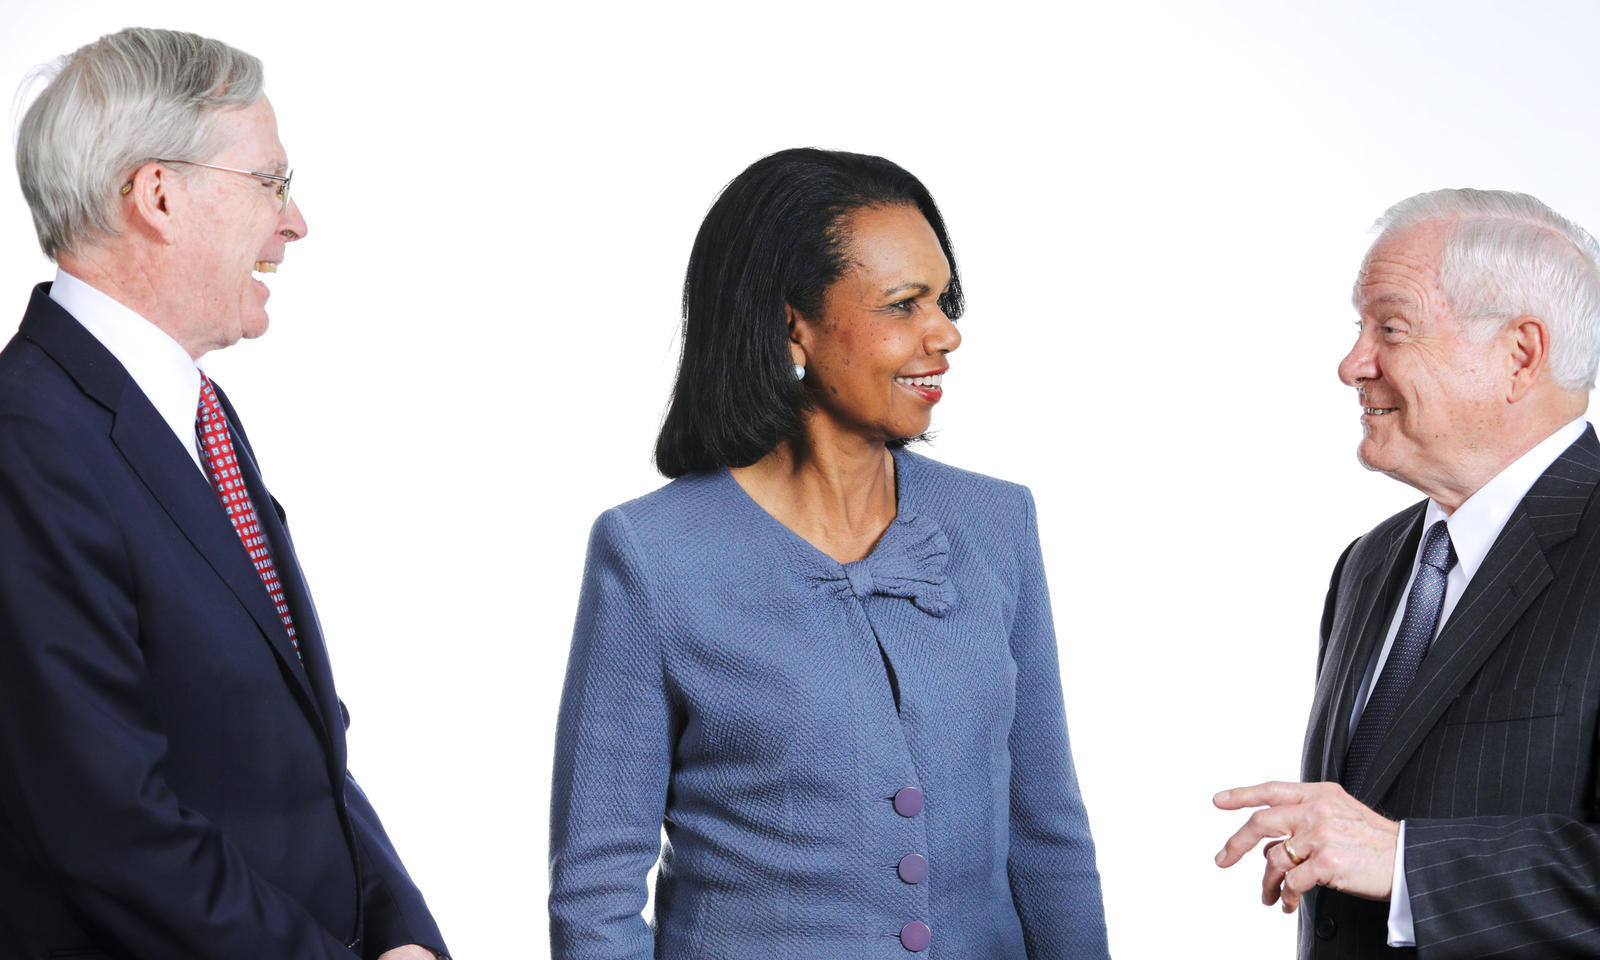 Stephen Hadley, Condoleeza Rice, and Robert Gates talking to each other